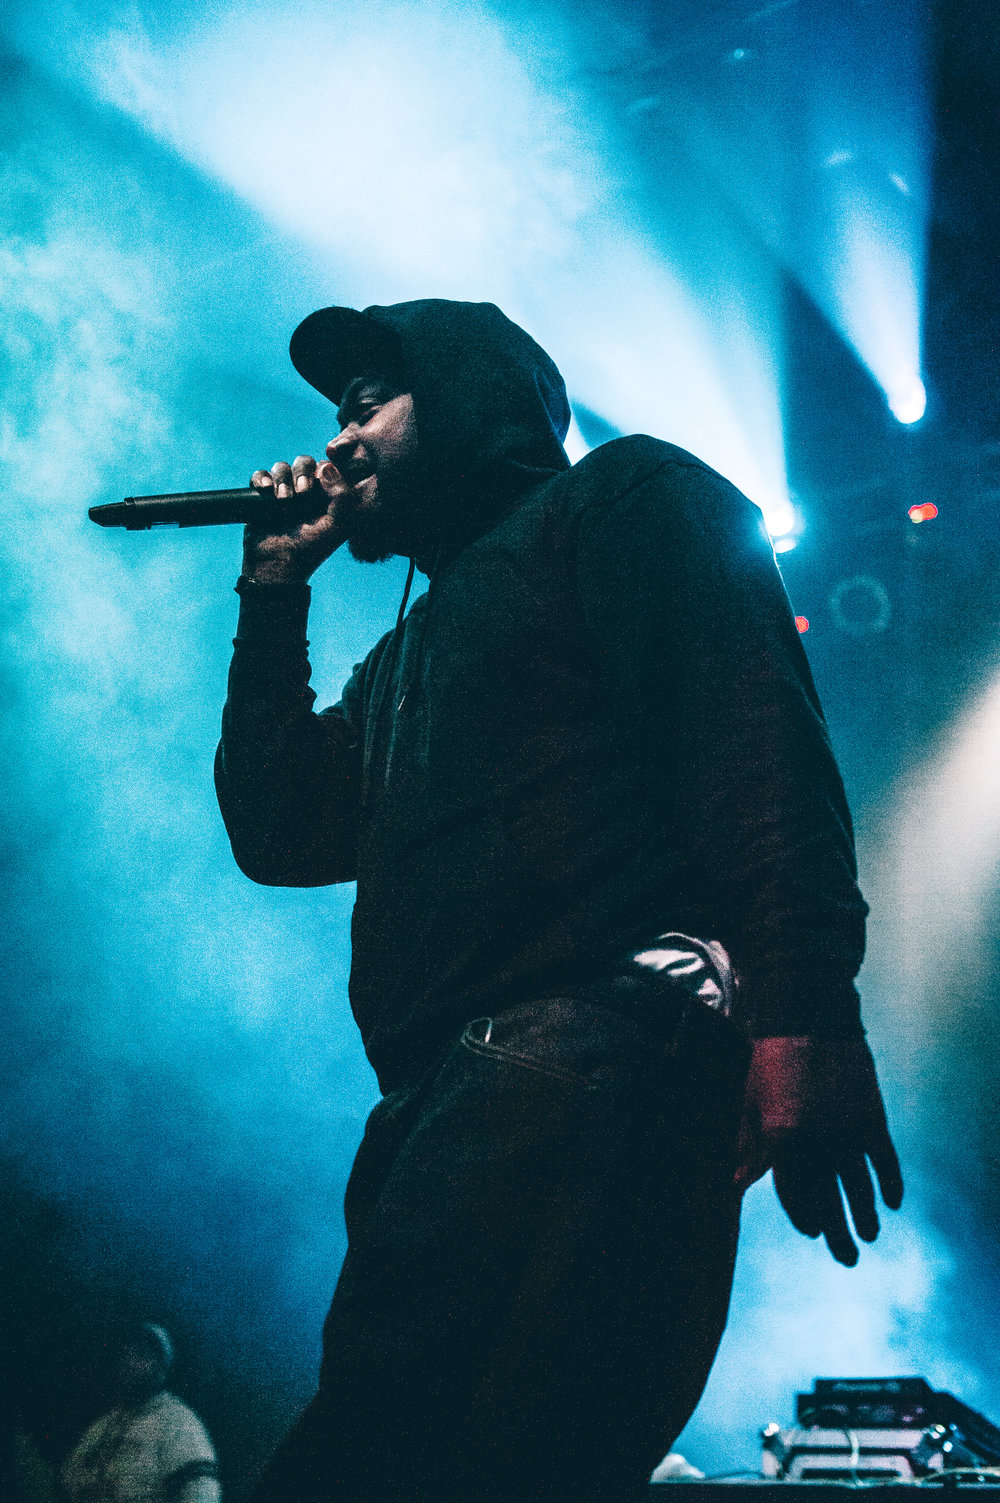 1_Ghostface_Killah-Rickshaw_Theatre-Timothy_Nguyen-20170227 (16 of 16).jpg